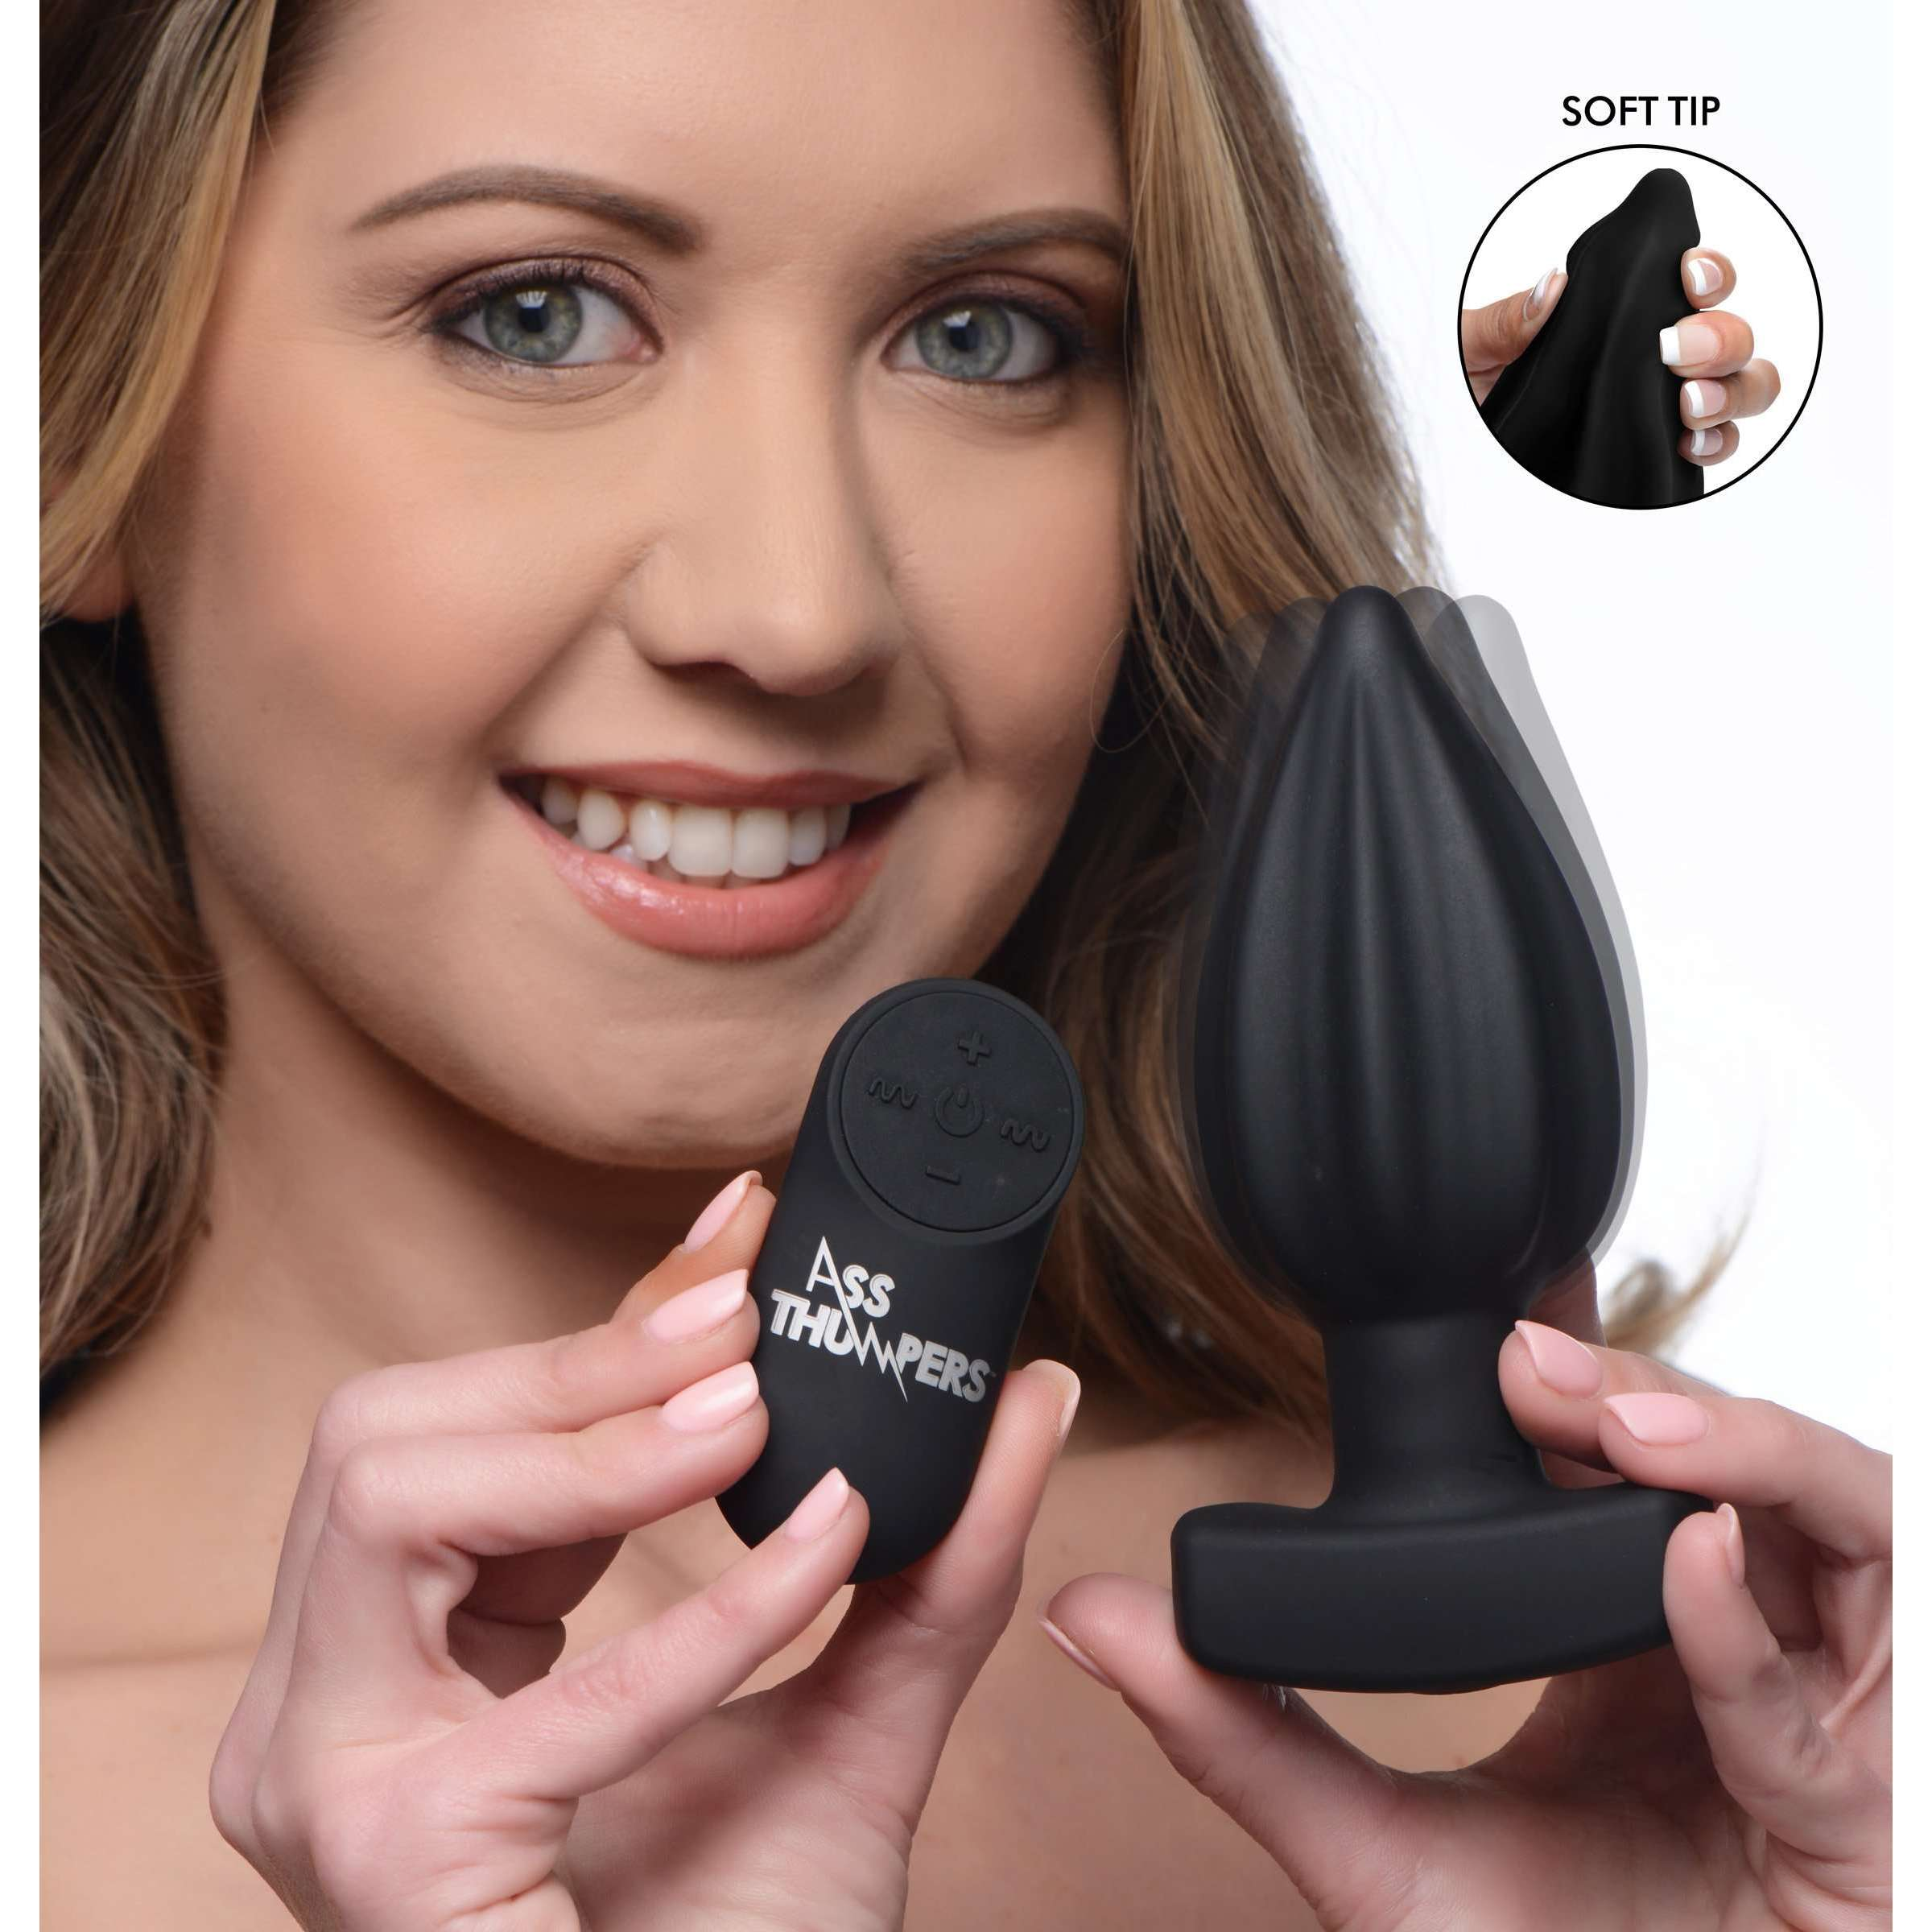 The Assterisk 10X Ribbed Silicone Remote Control Vibrating Butt Plug